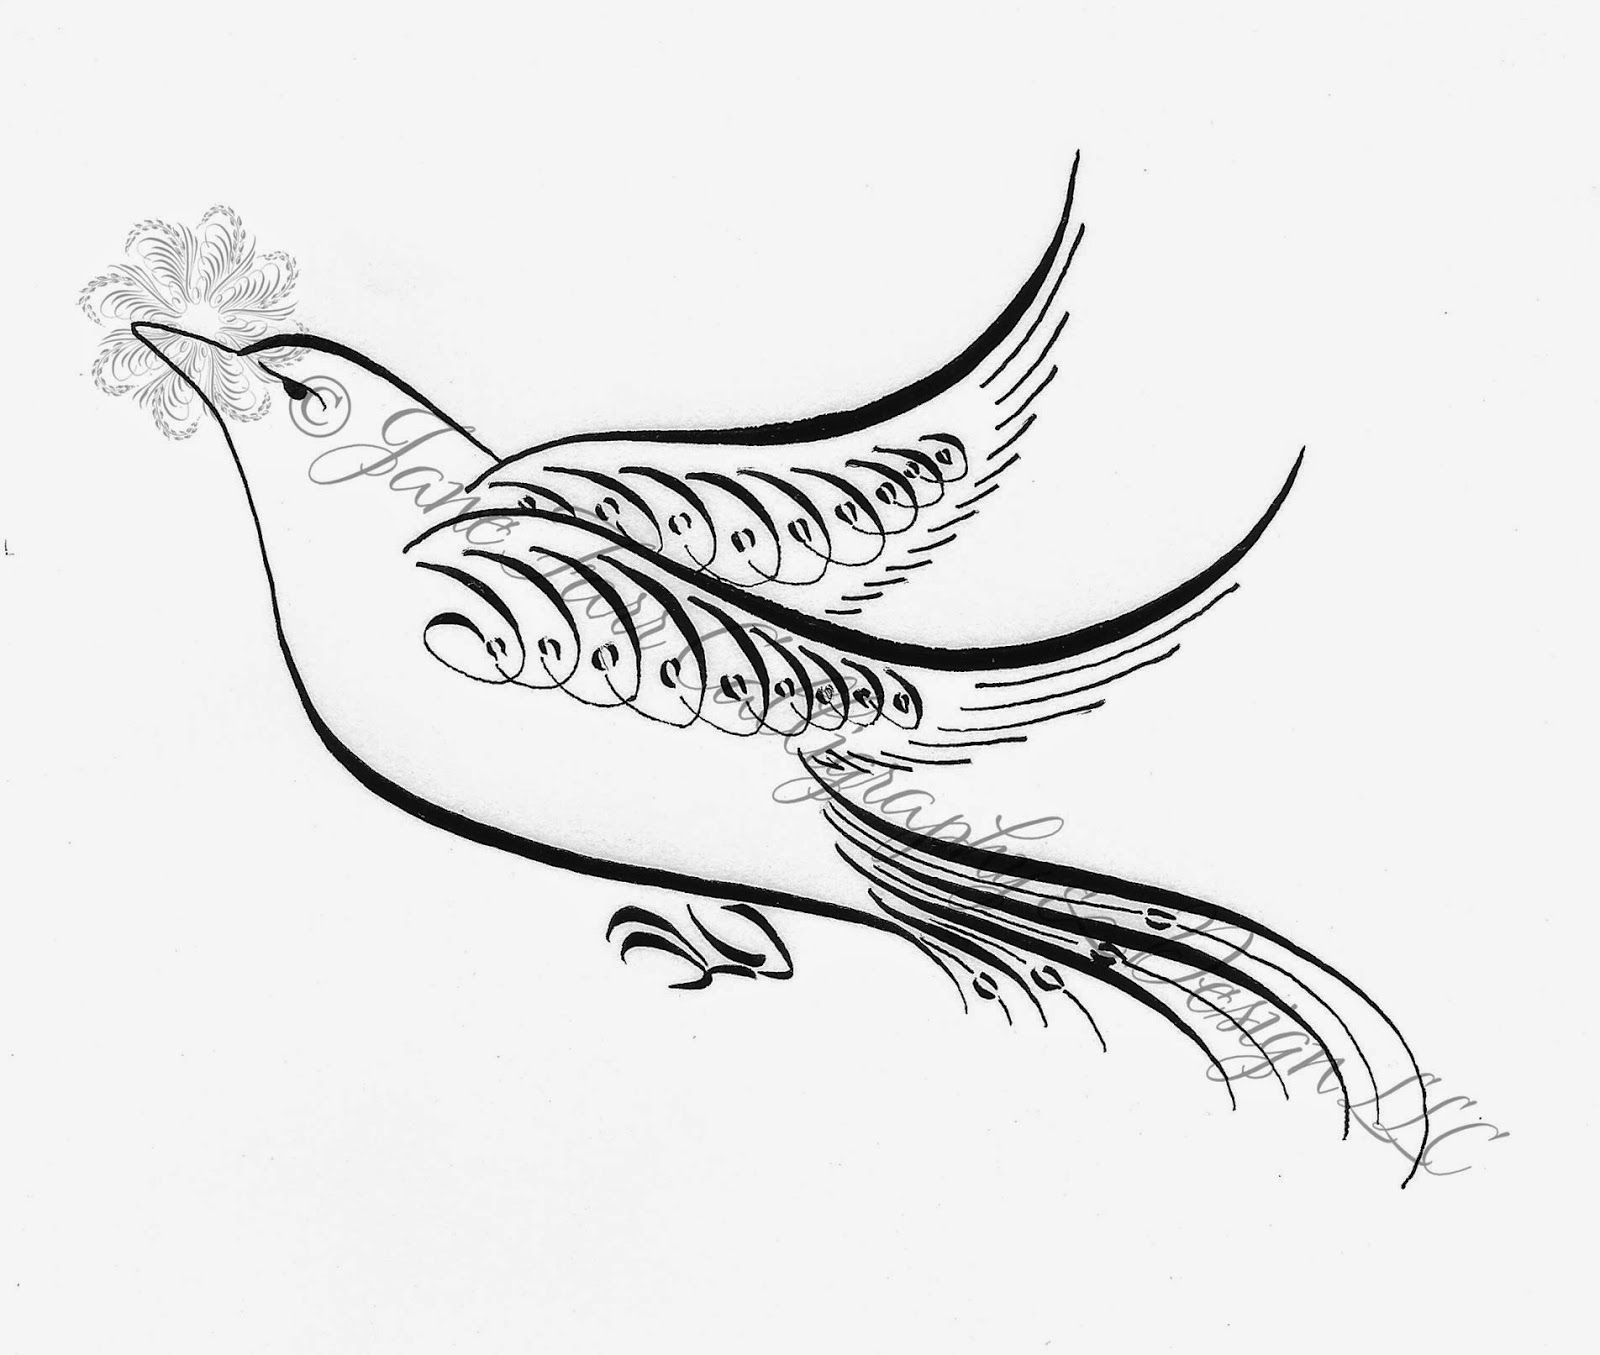 Drawing Lines For Calligraphy : Calligraphy art bird pixshark images galleries